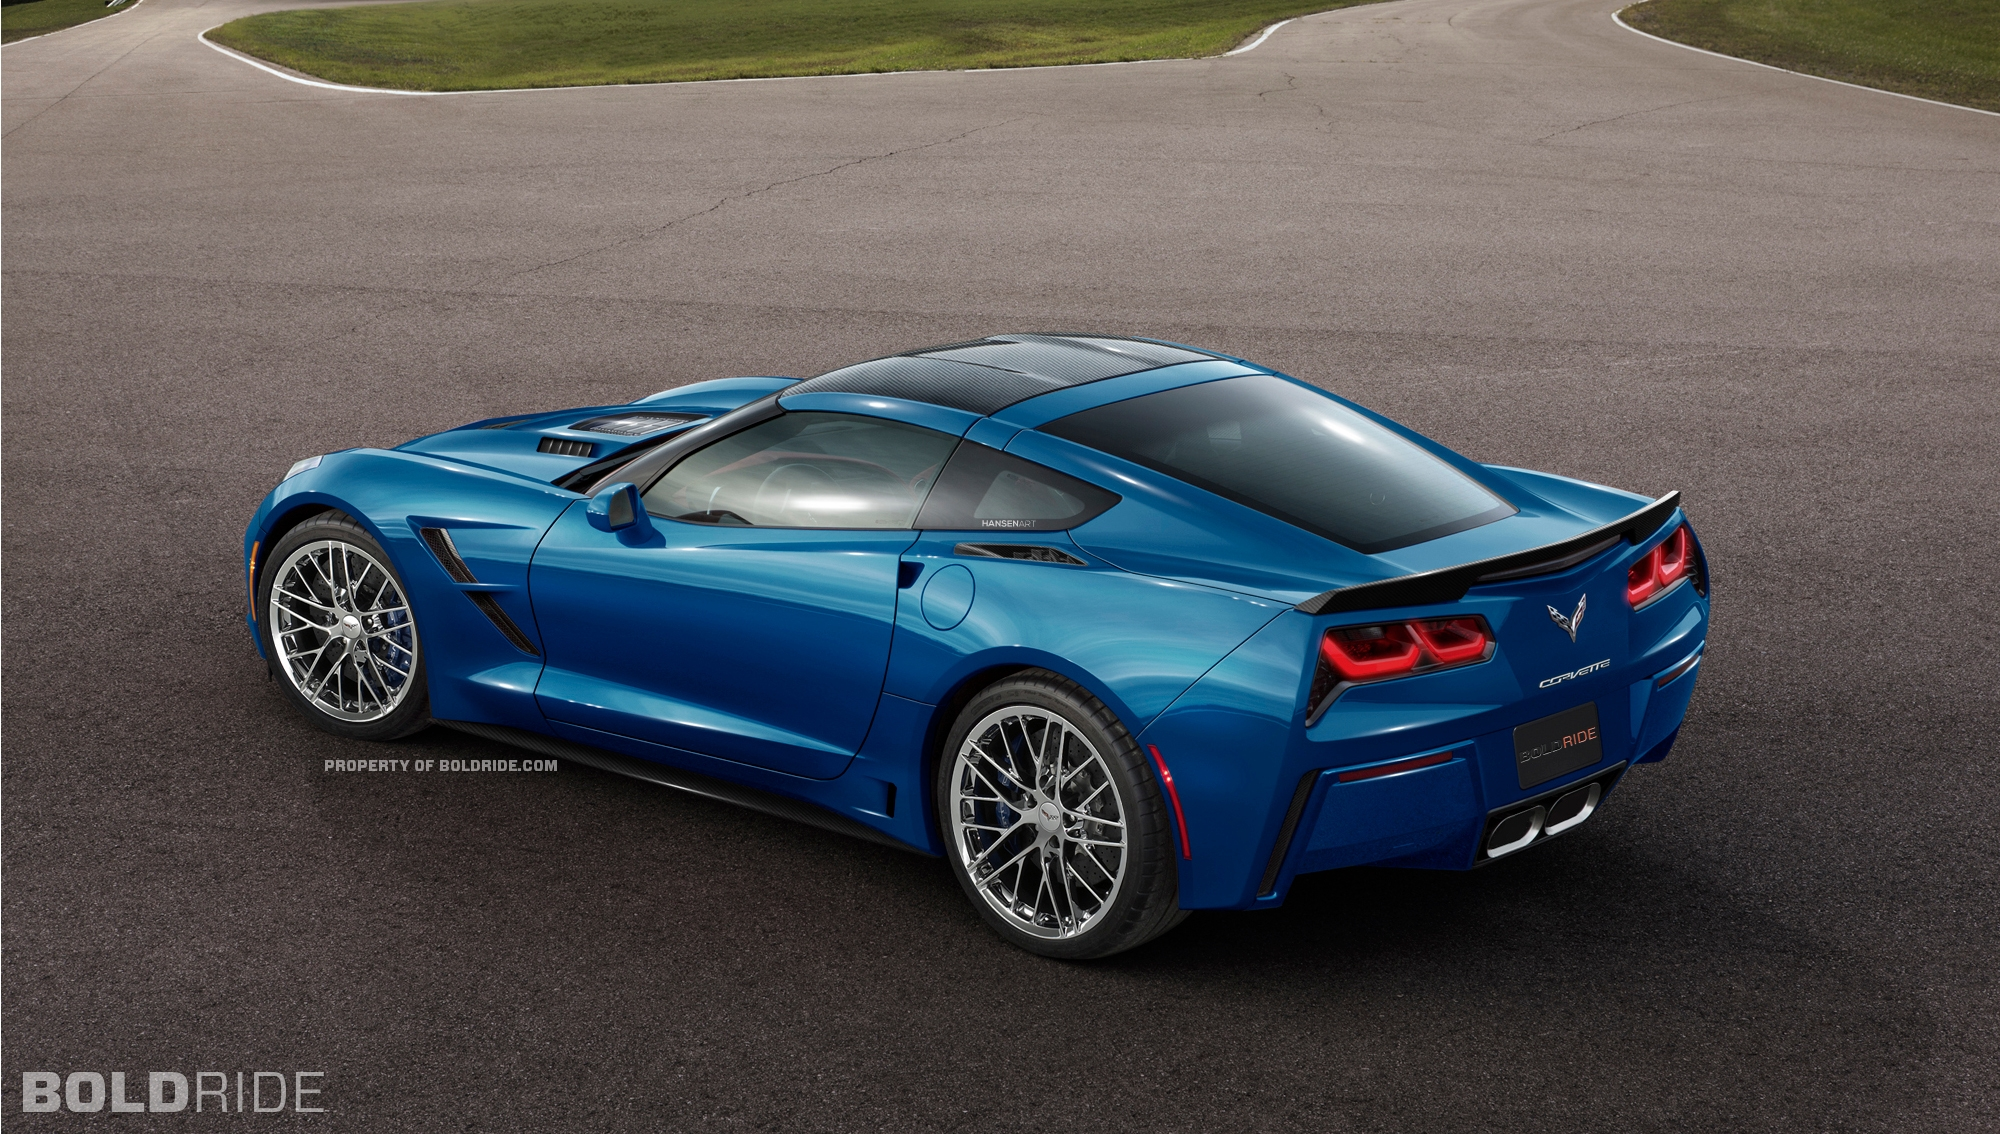 2018 Chevrolet Stingray Concept | Car Photos Catalog 2018